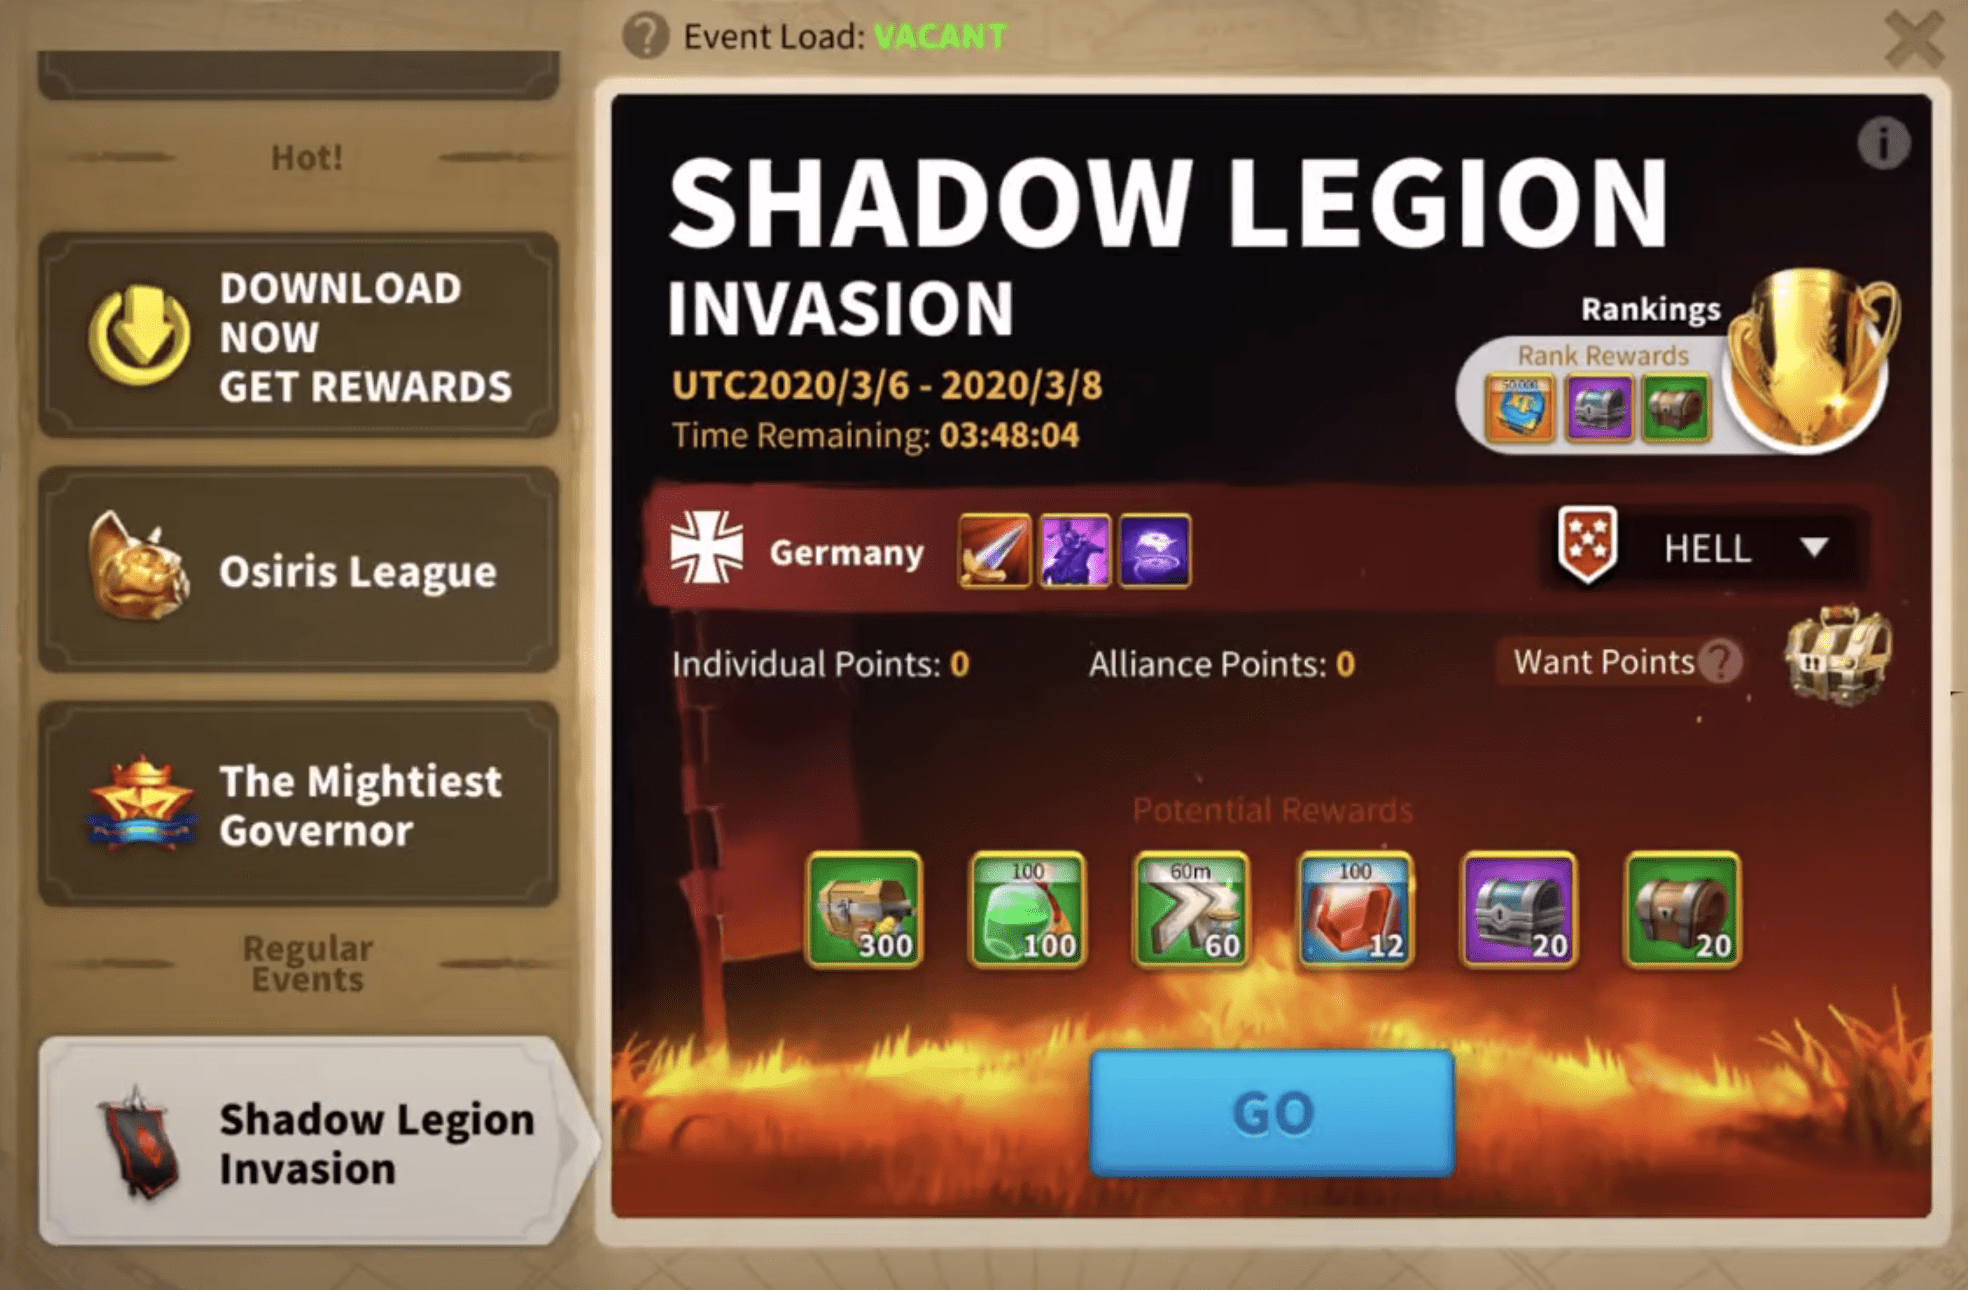 shadow legion invasion event